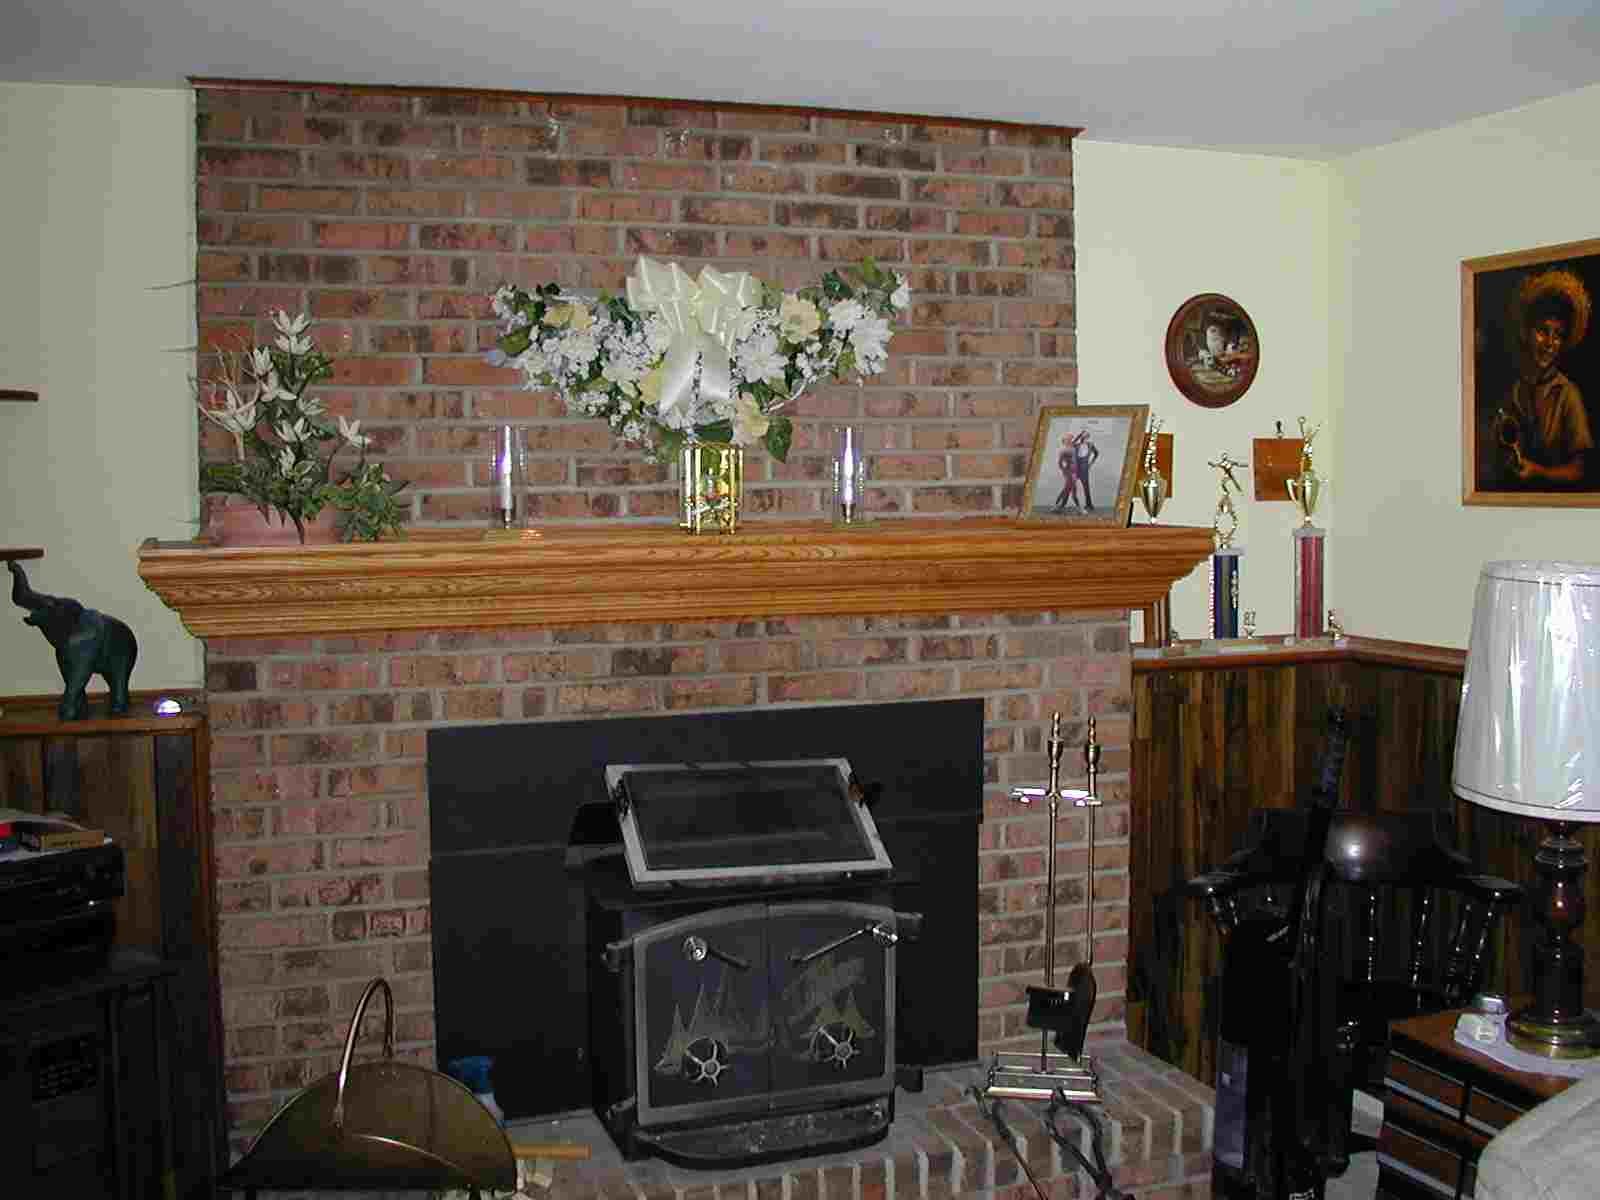 Fireplace Mantel Shelf I did this fireplace mantel in